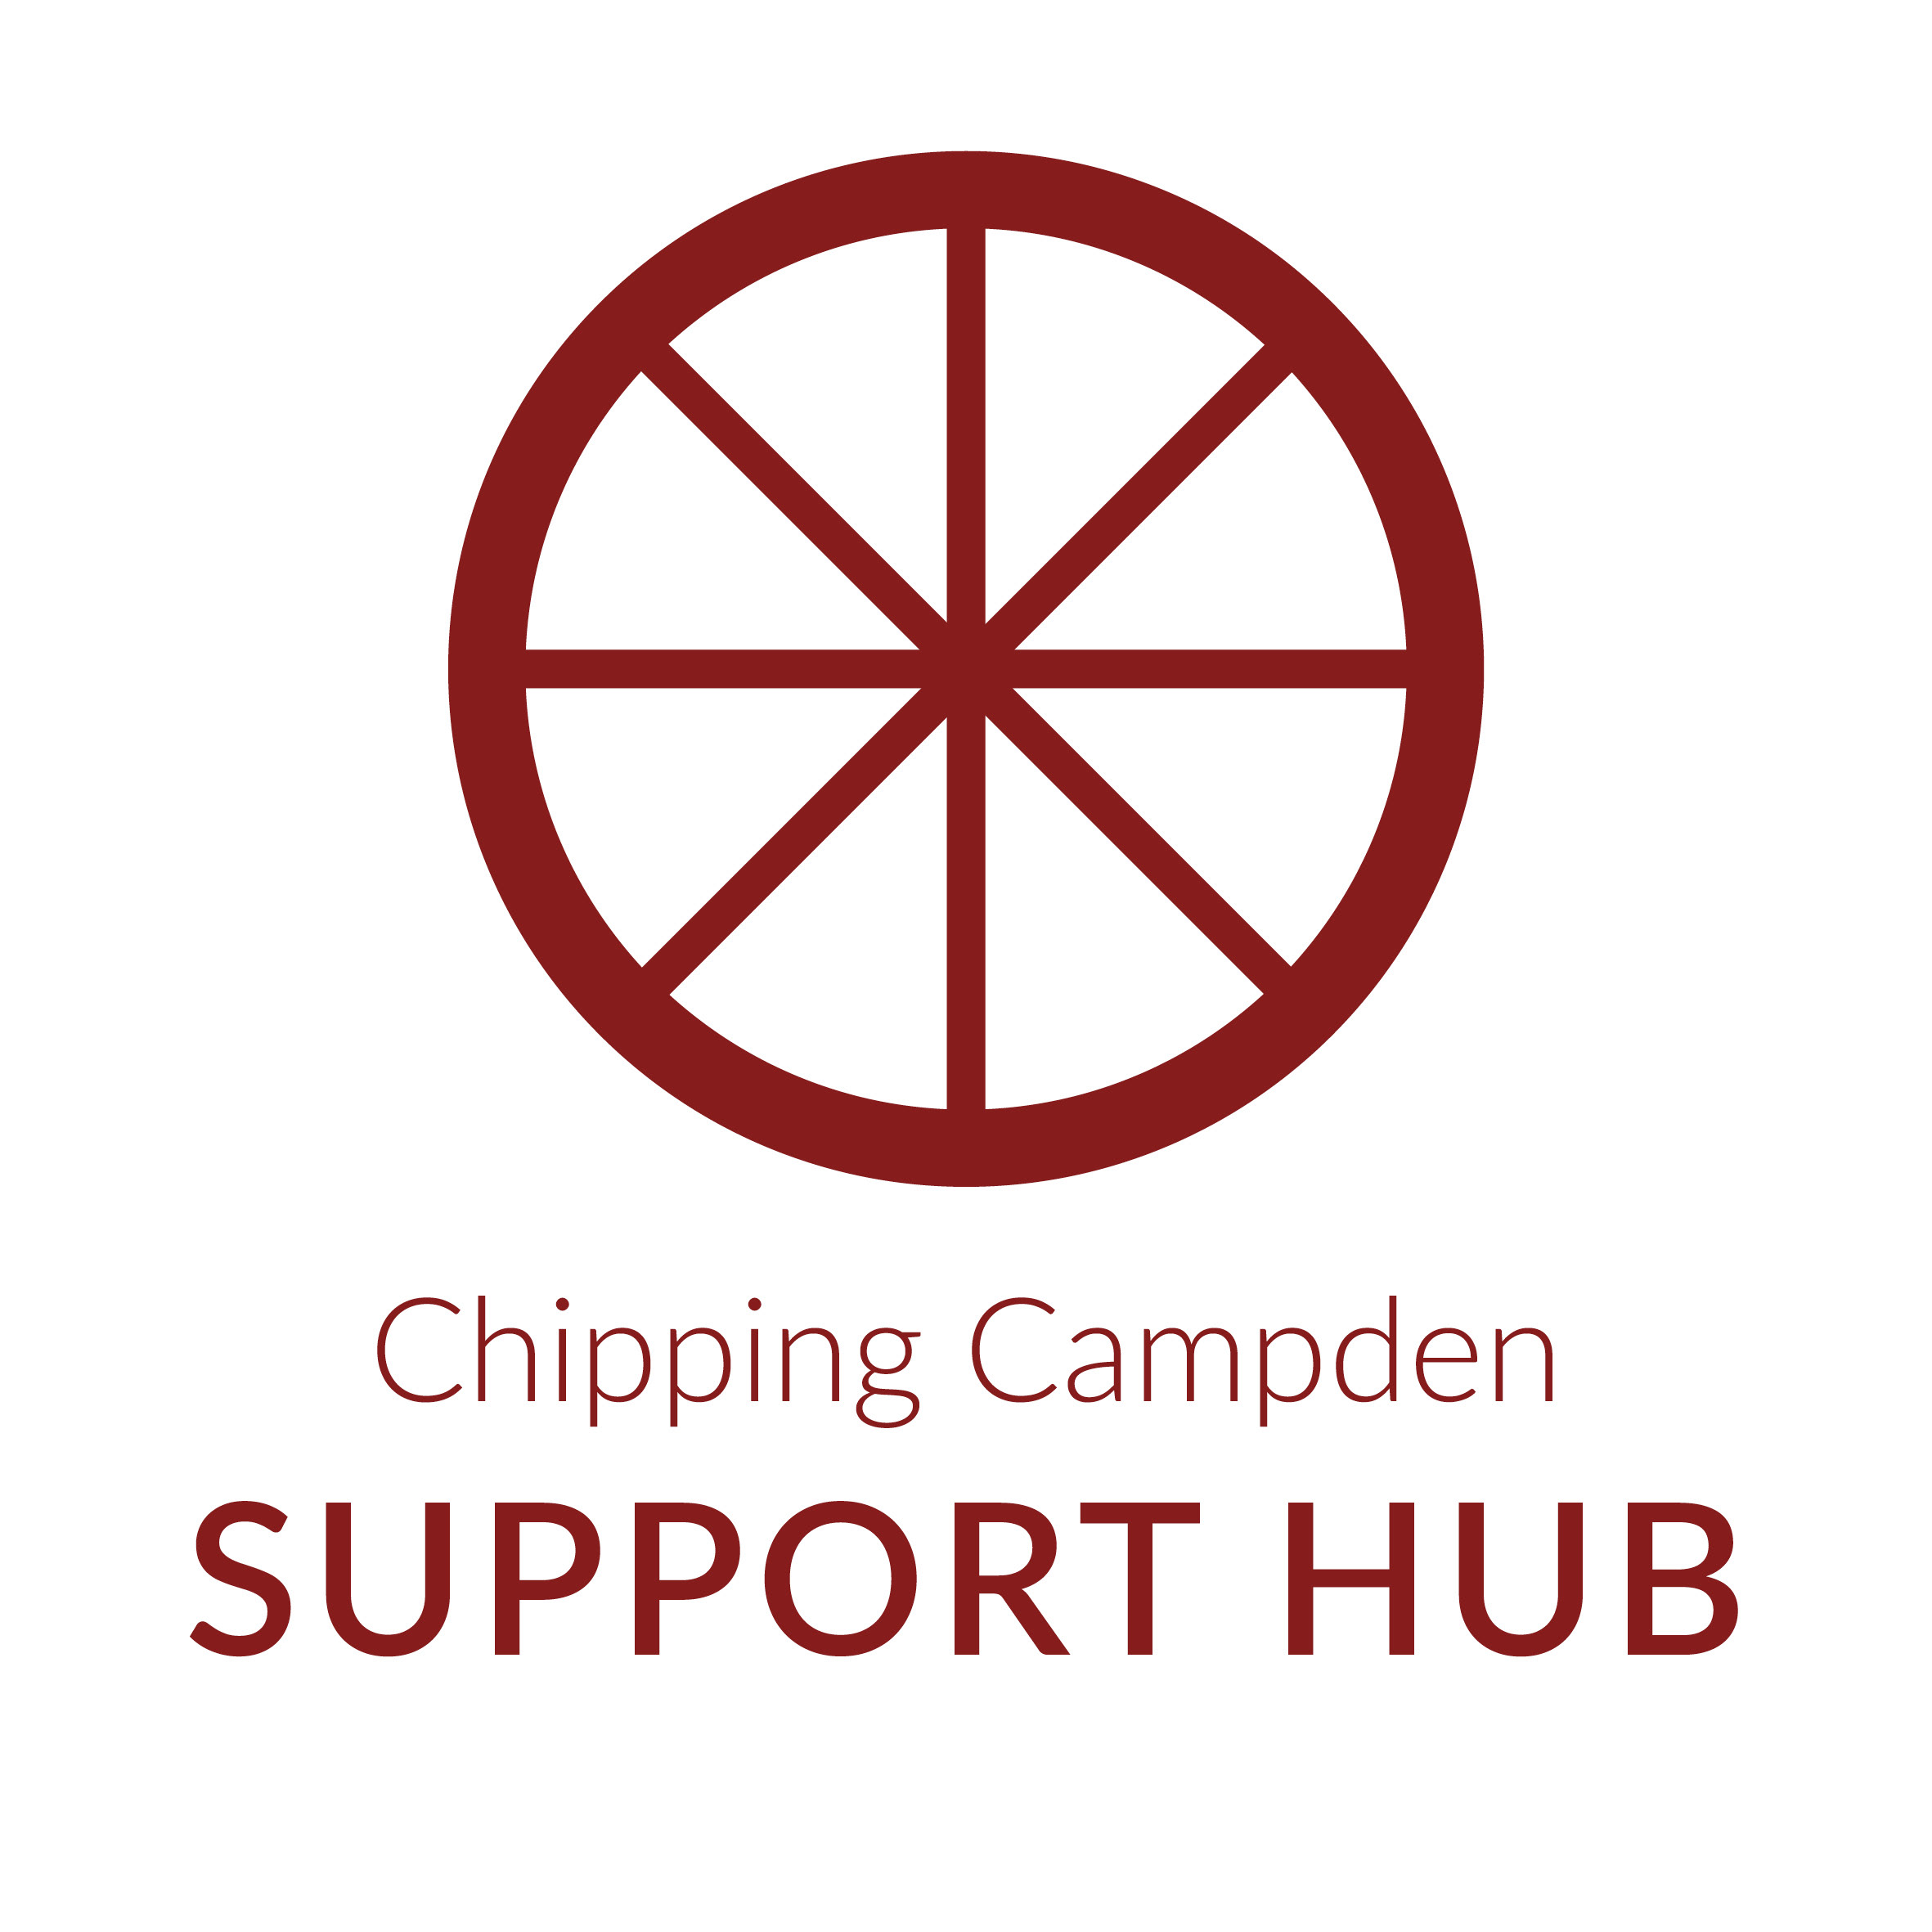 Chipping Campden Support Hub